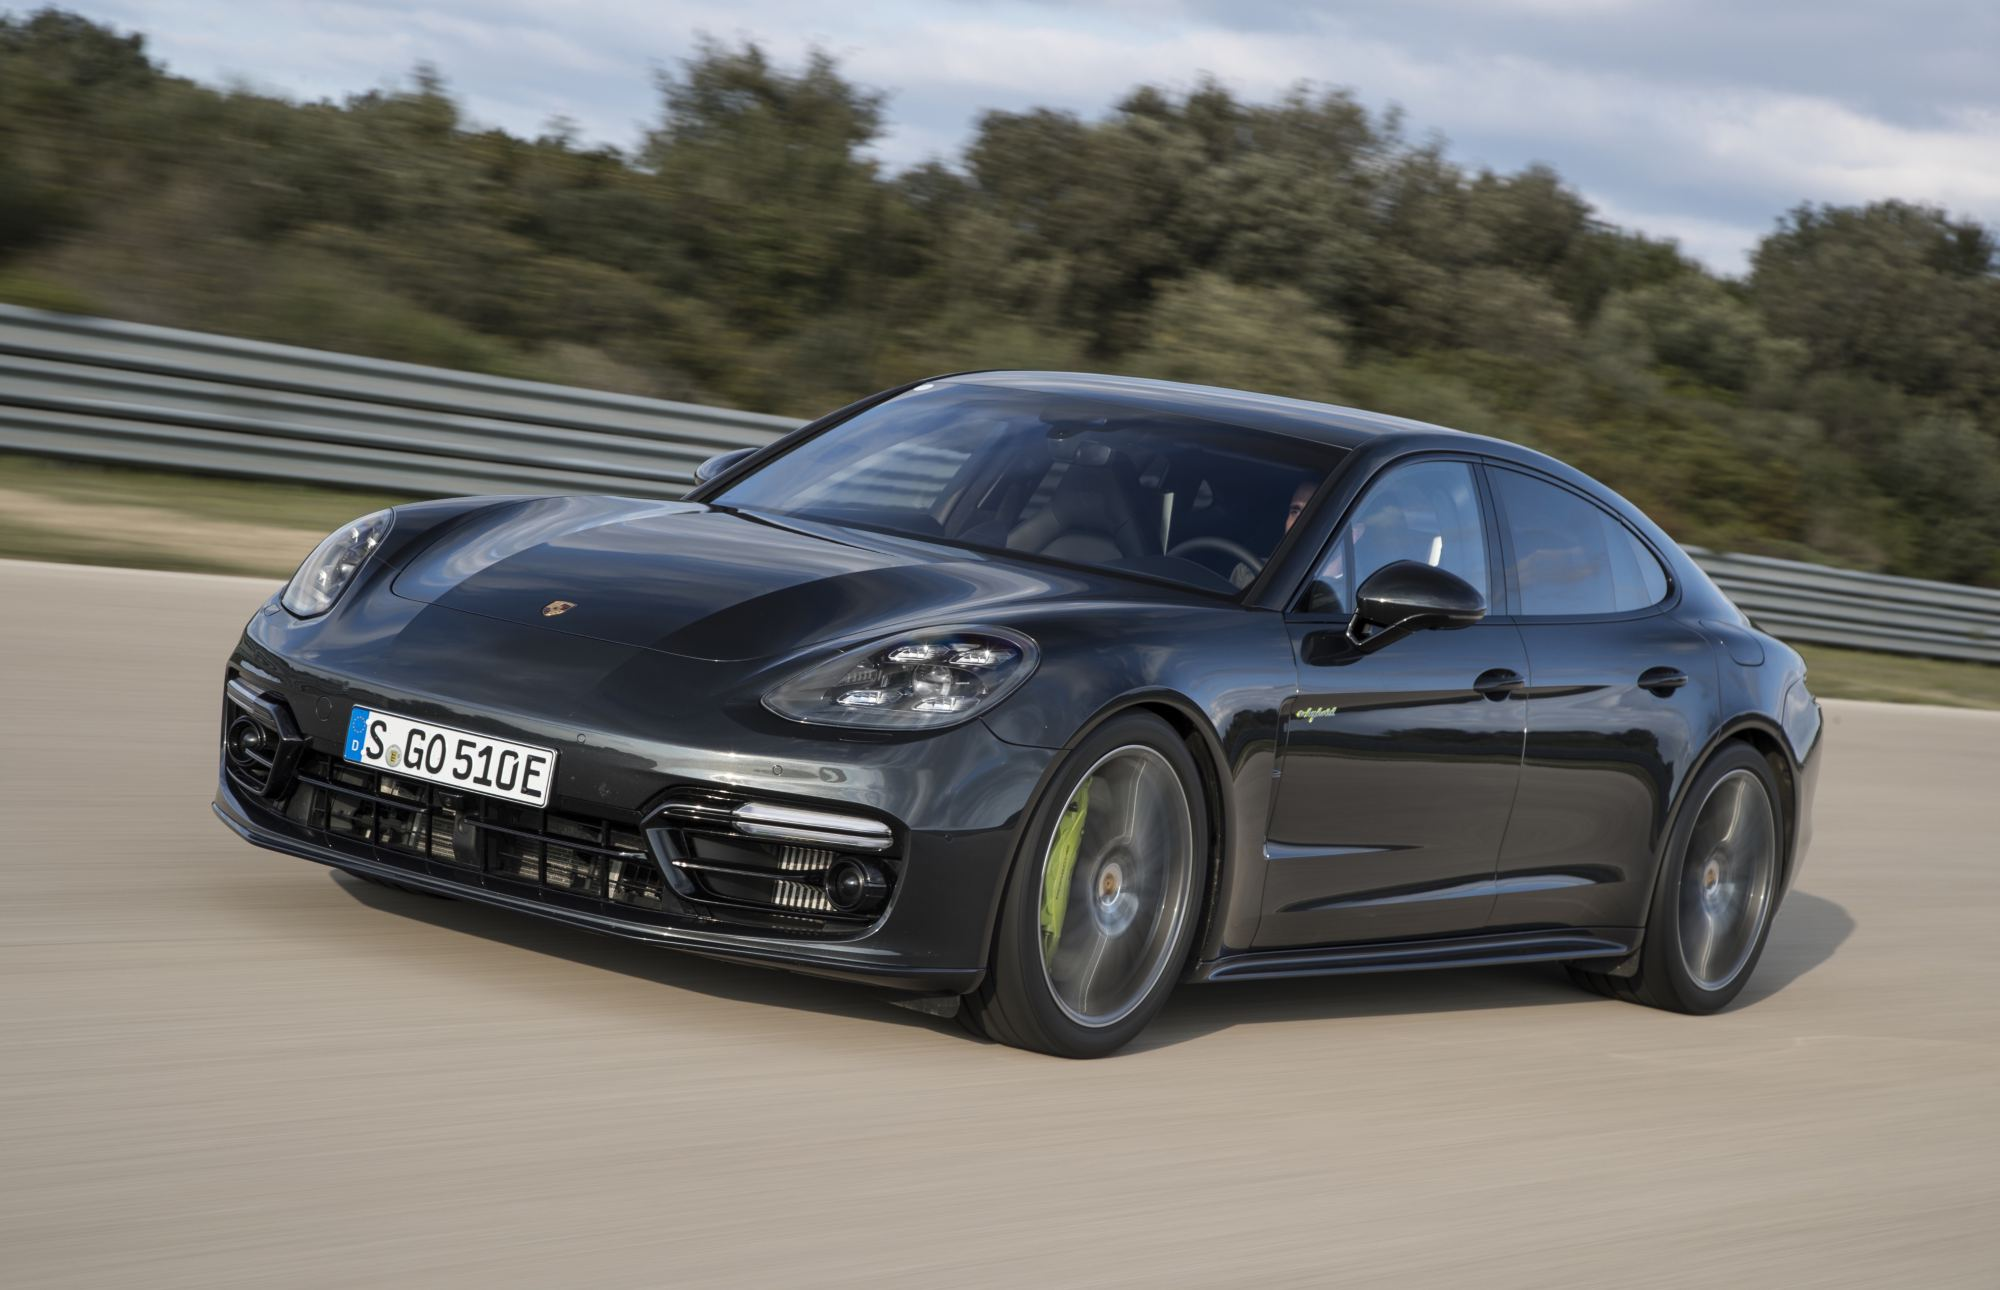 news panamera turbo s e hybrid is new porsche saloon king. Black Bedroom Furniture Sets. Home Design Ideas